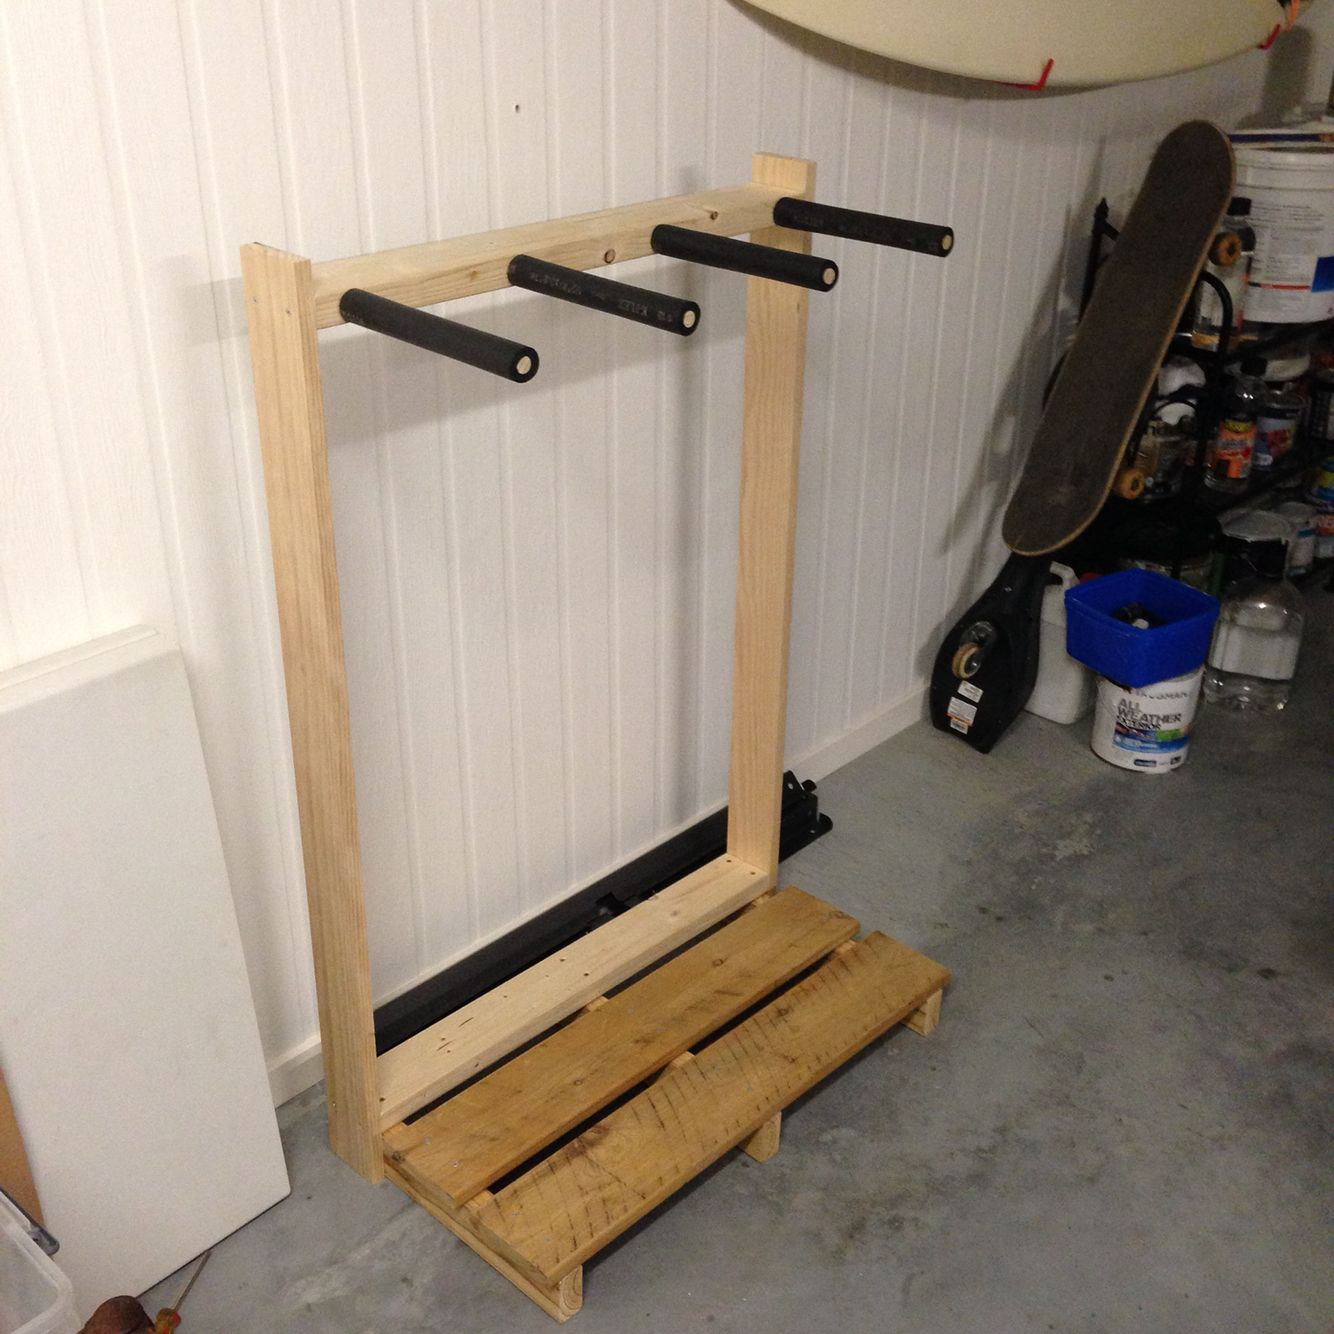 Beau Pallet Surfboard Rack An Easy Project That Will Help Protect Your Boards  And Organise Them.